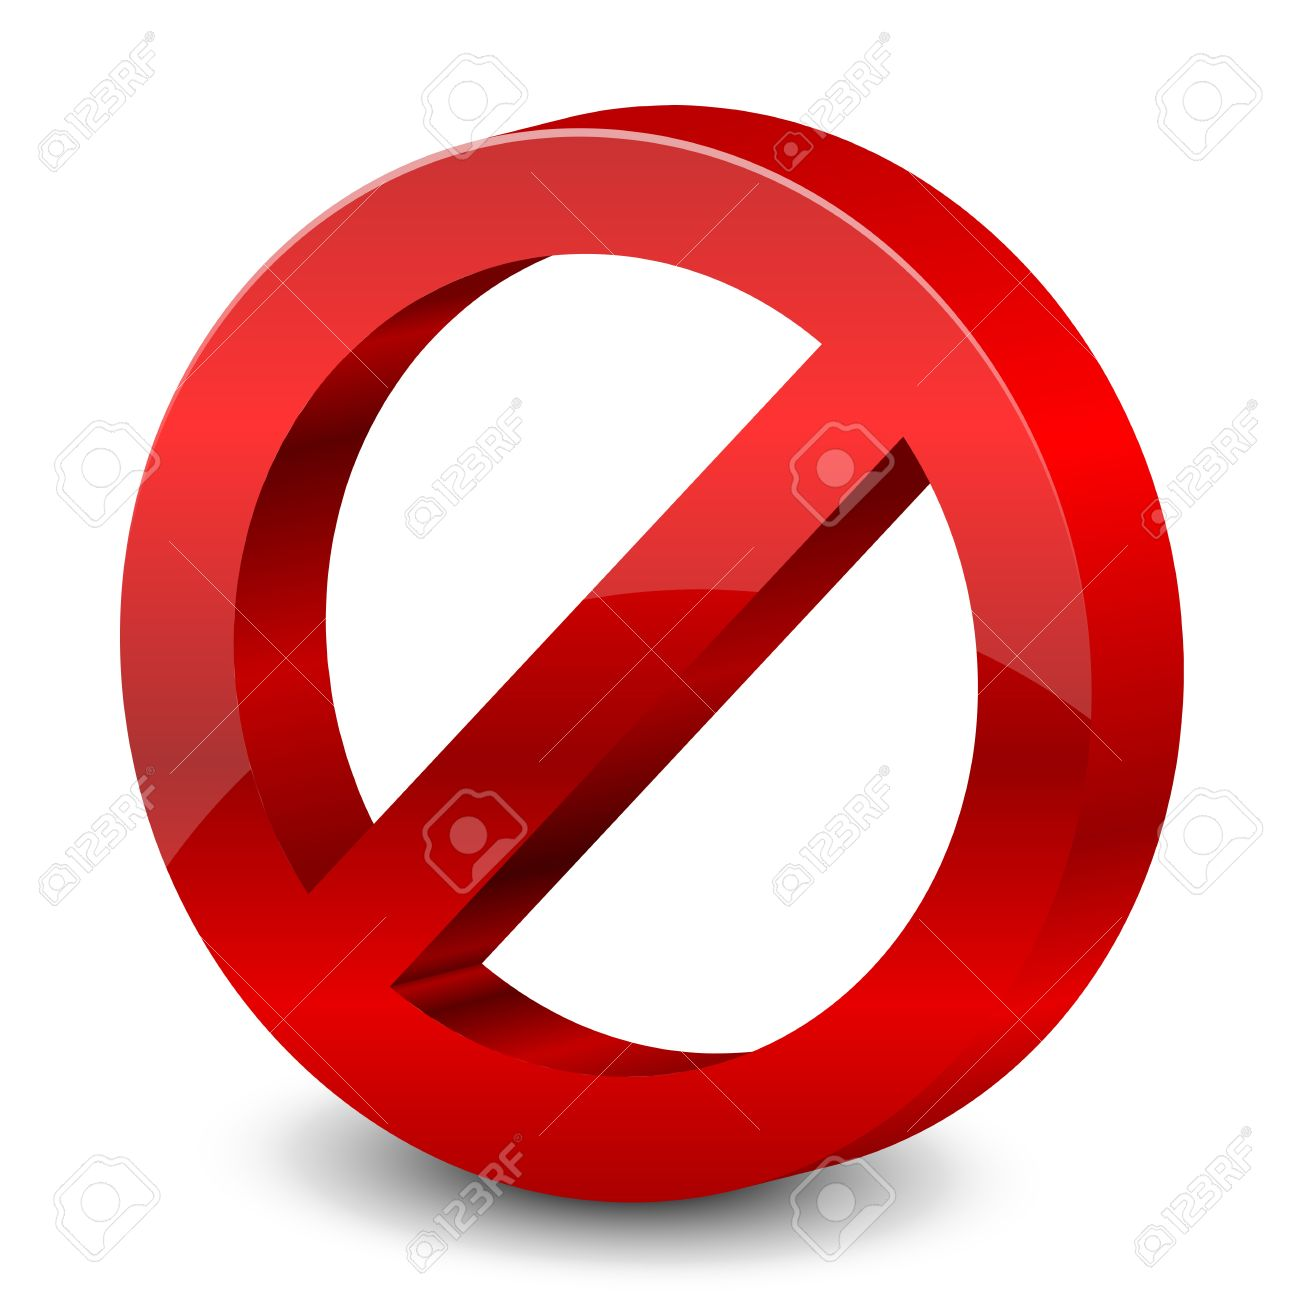 Illustration Of 3d Forbidden Sign Royalty Free Cliparts, Vectors.